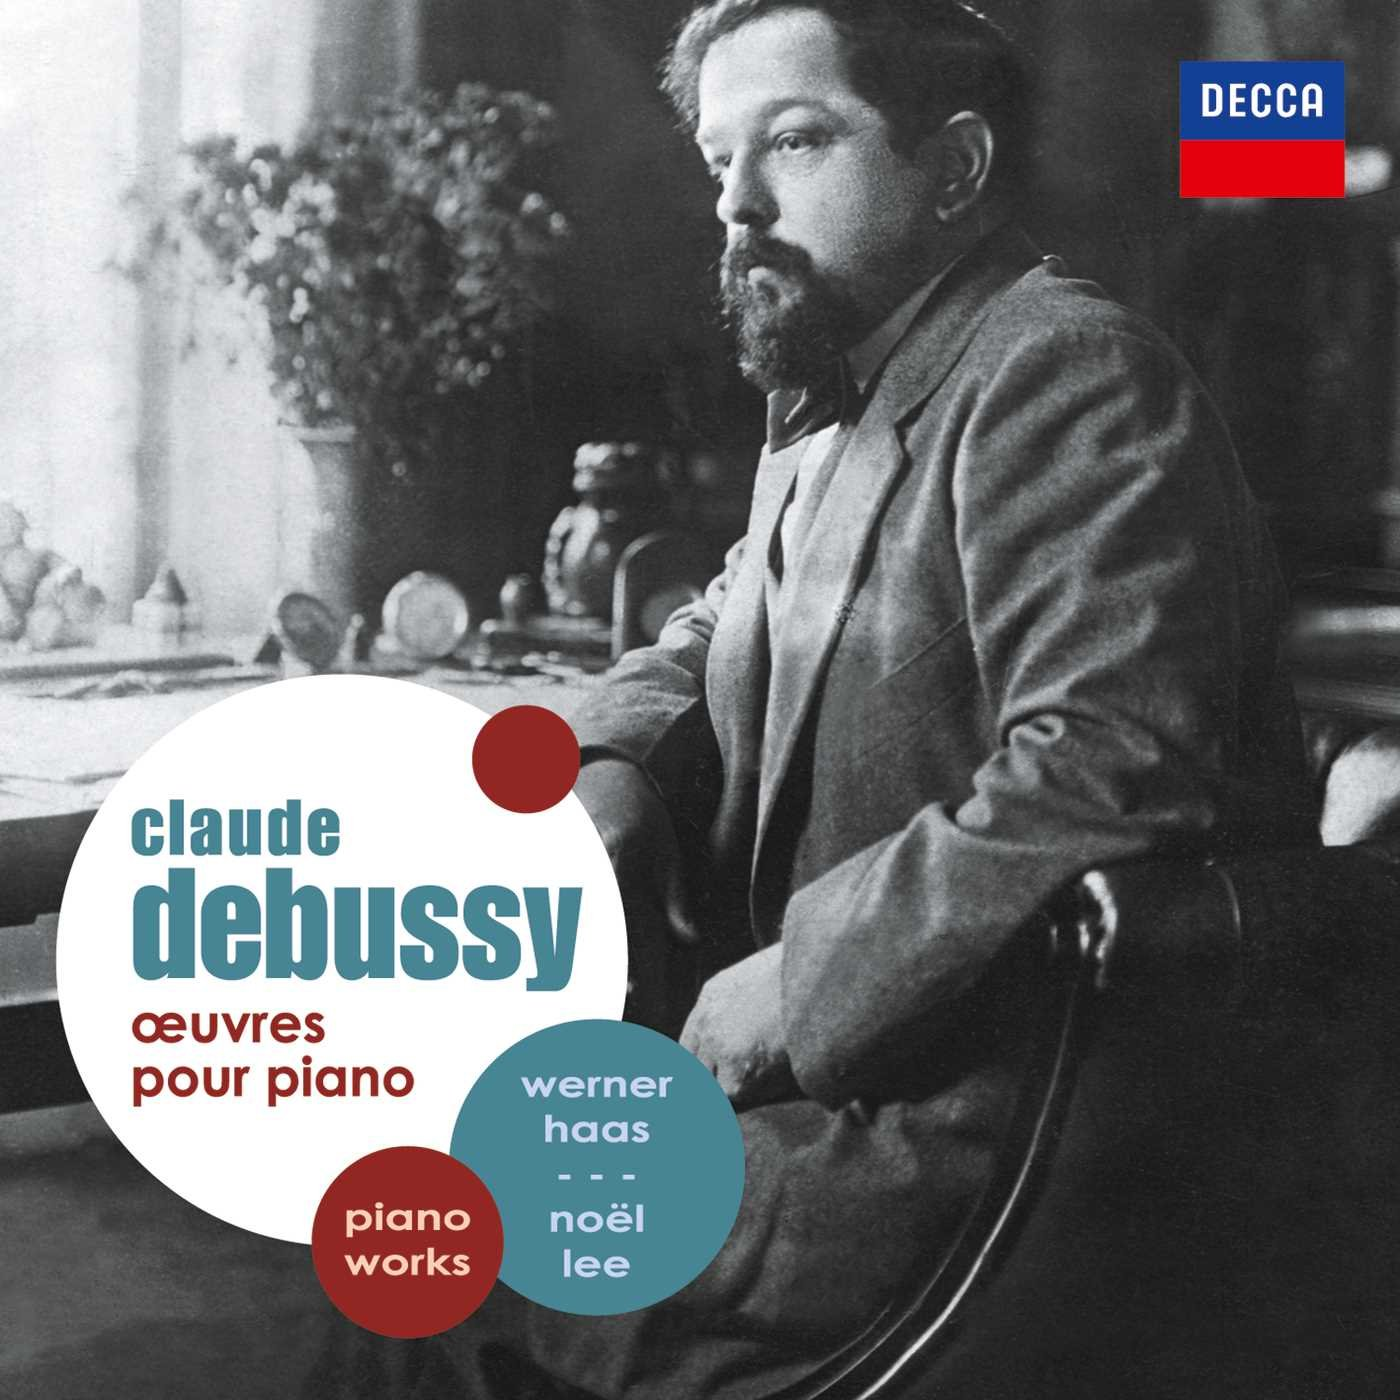 Debussy - Oeuvres pour piano - Page 8 71xHzF2xjTL